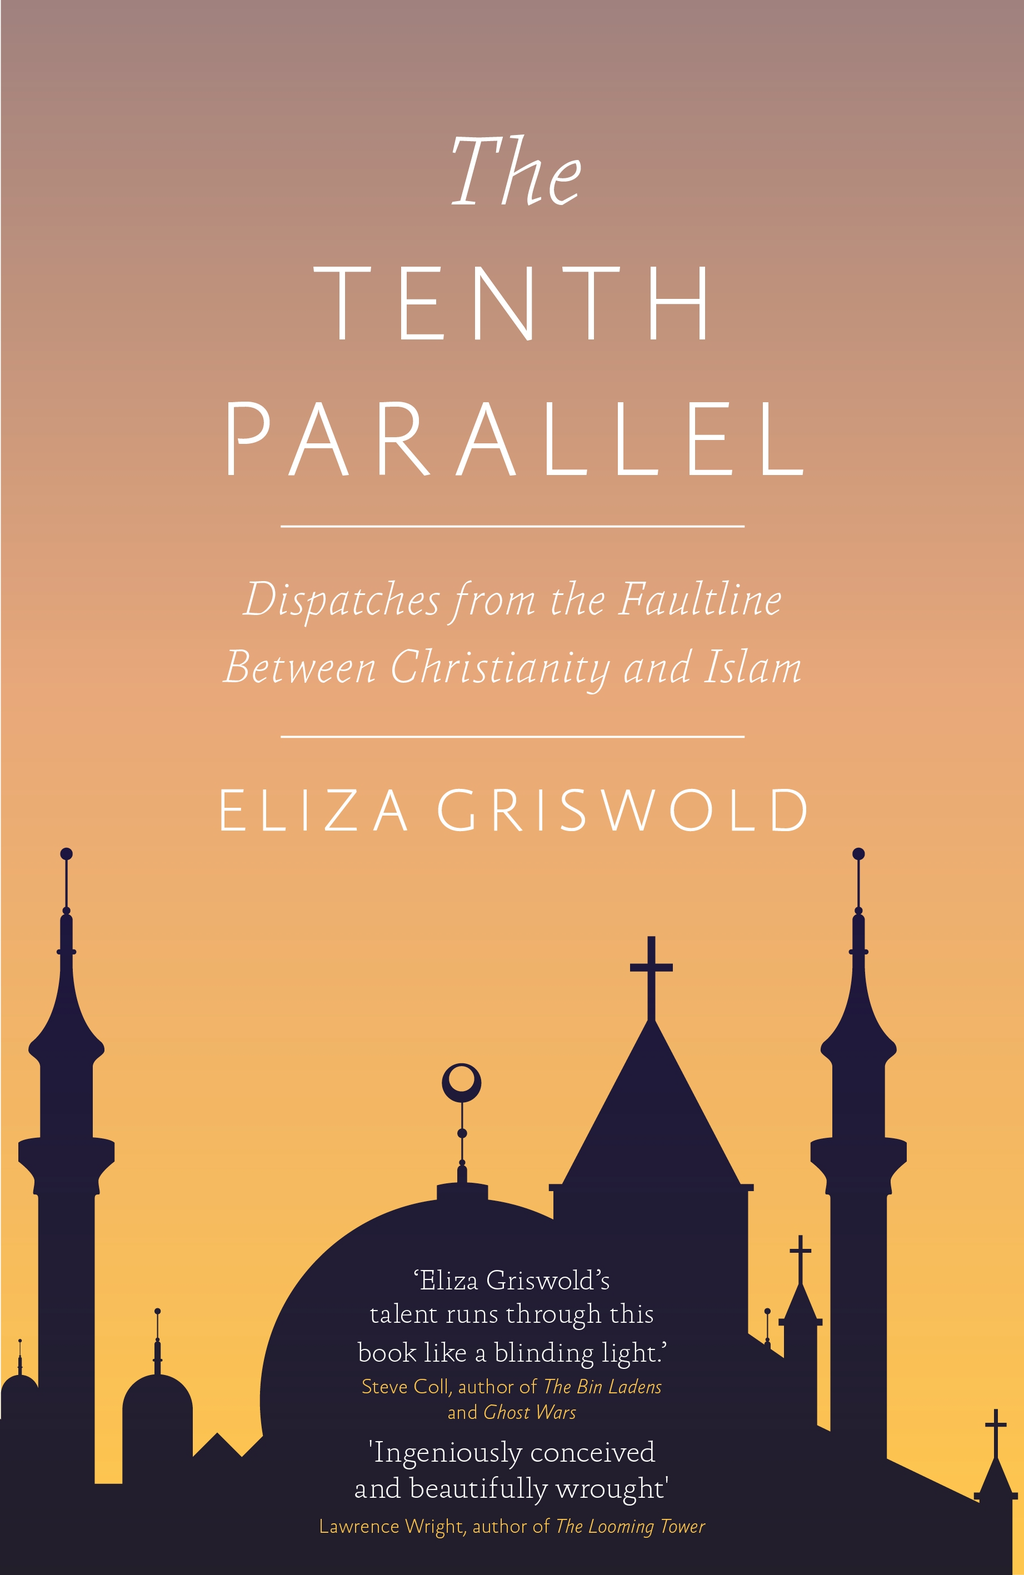 The Tenth Parallel Dispatches from the Faultline Between Christianity and Islam